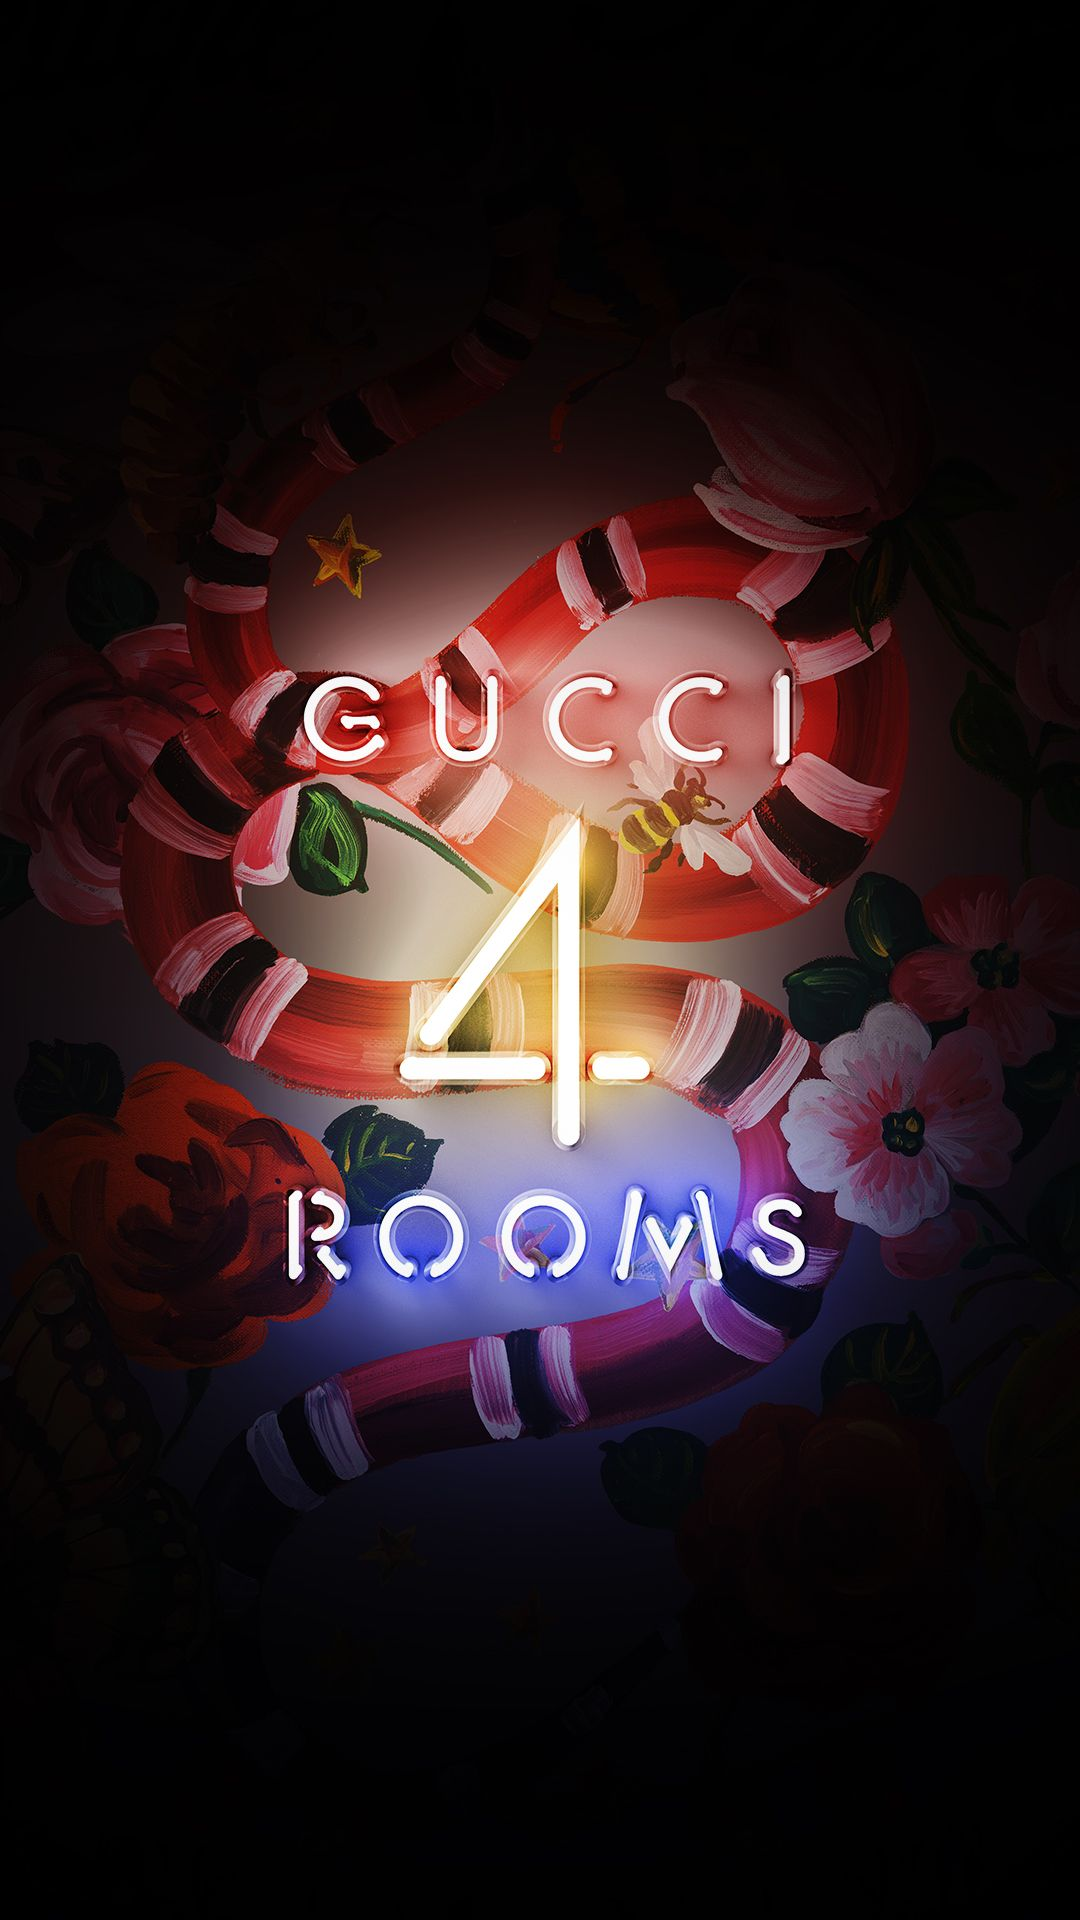 1080x1920 Gucci 4 Rooms Wallpapers   Gucci Official Site United States